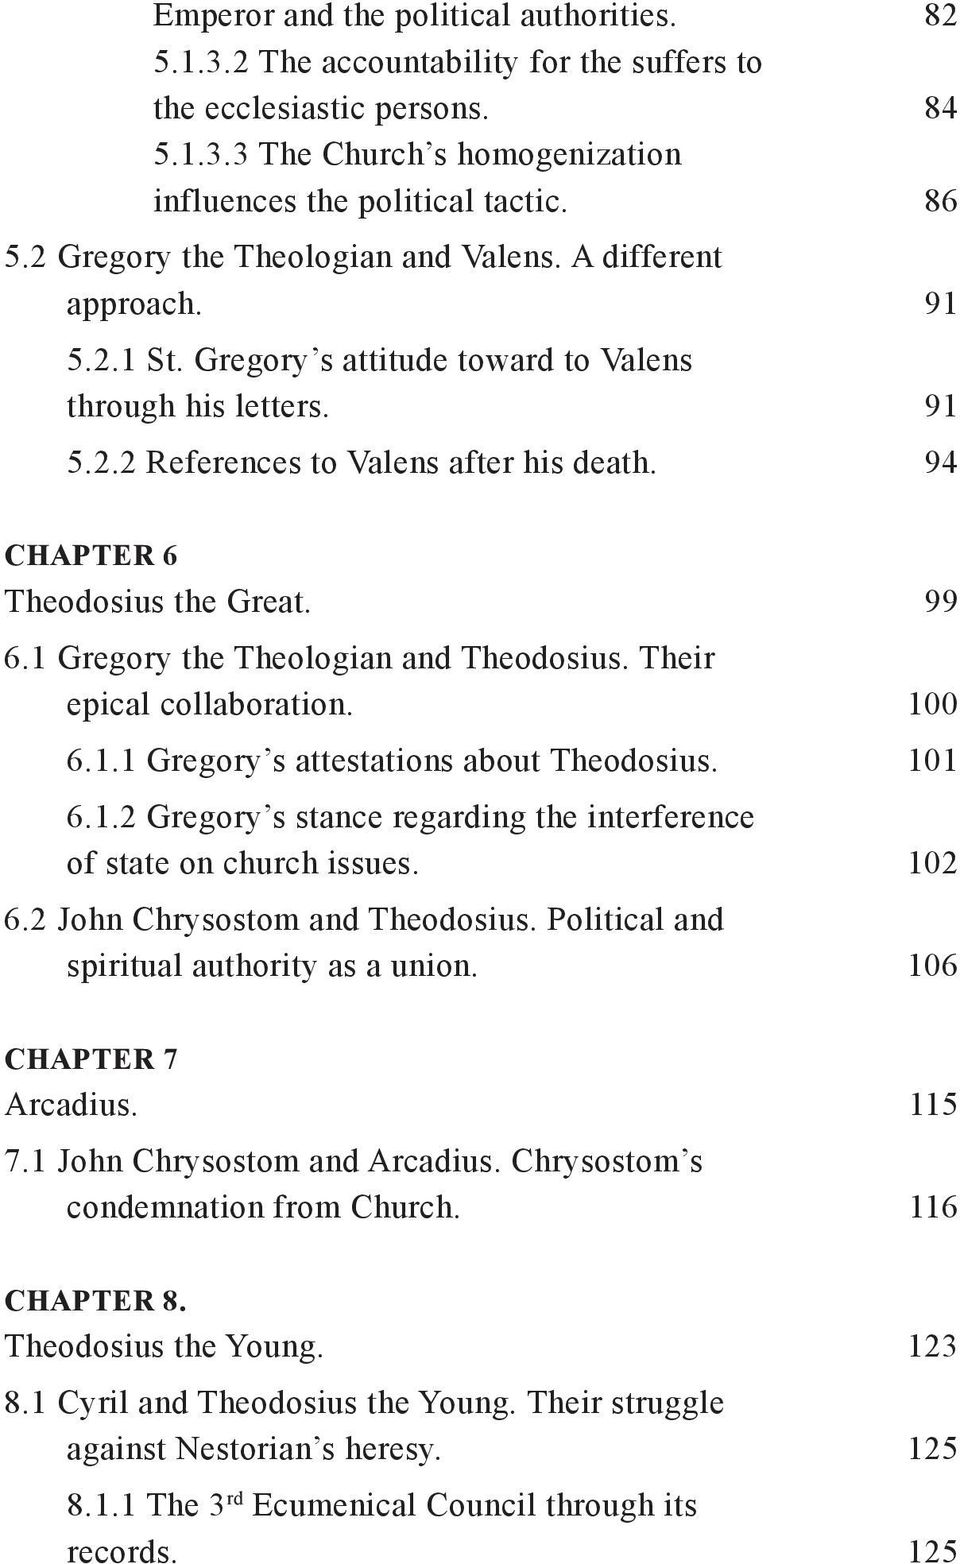 94 CHAPTER 6 Theodosius the Great. 99 6.1 Gregory the Theologian and Theodosius. Their epical collaboration. 100 6.1.1 Gregory s attestations about Theodosius. 101 6.1.2 Gregory s stance regarding the interference of state on church issues.